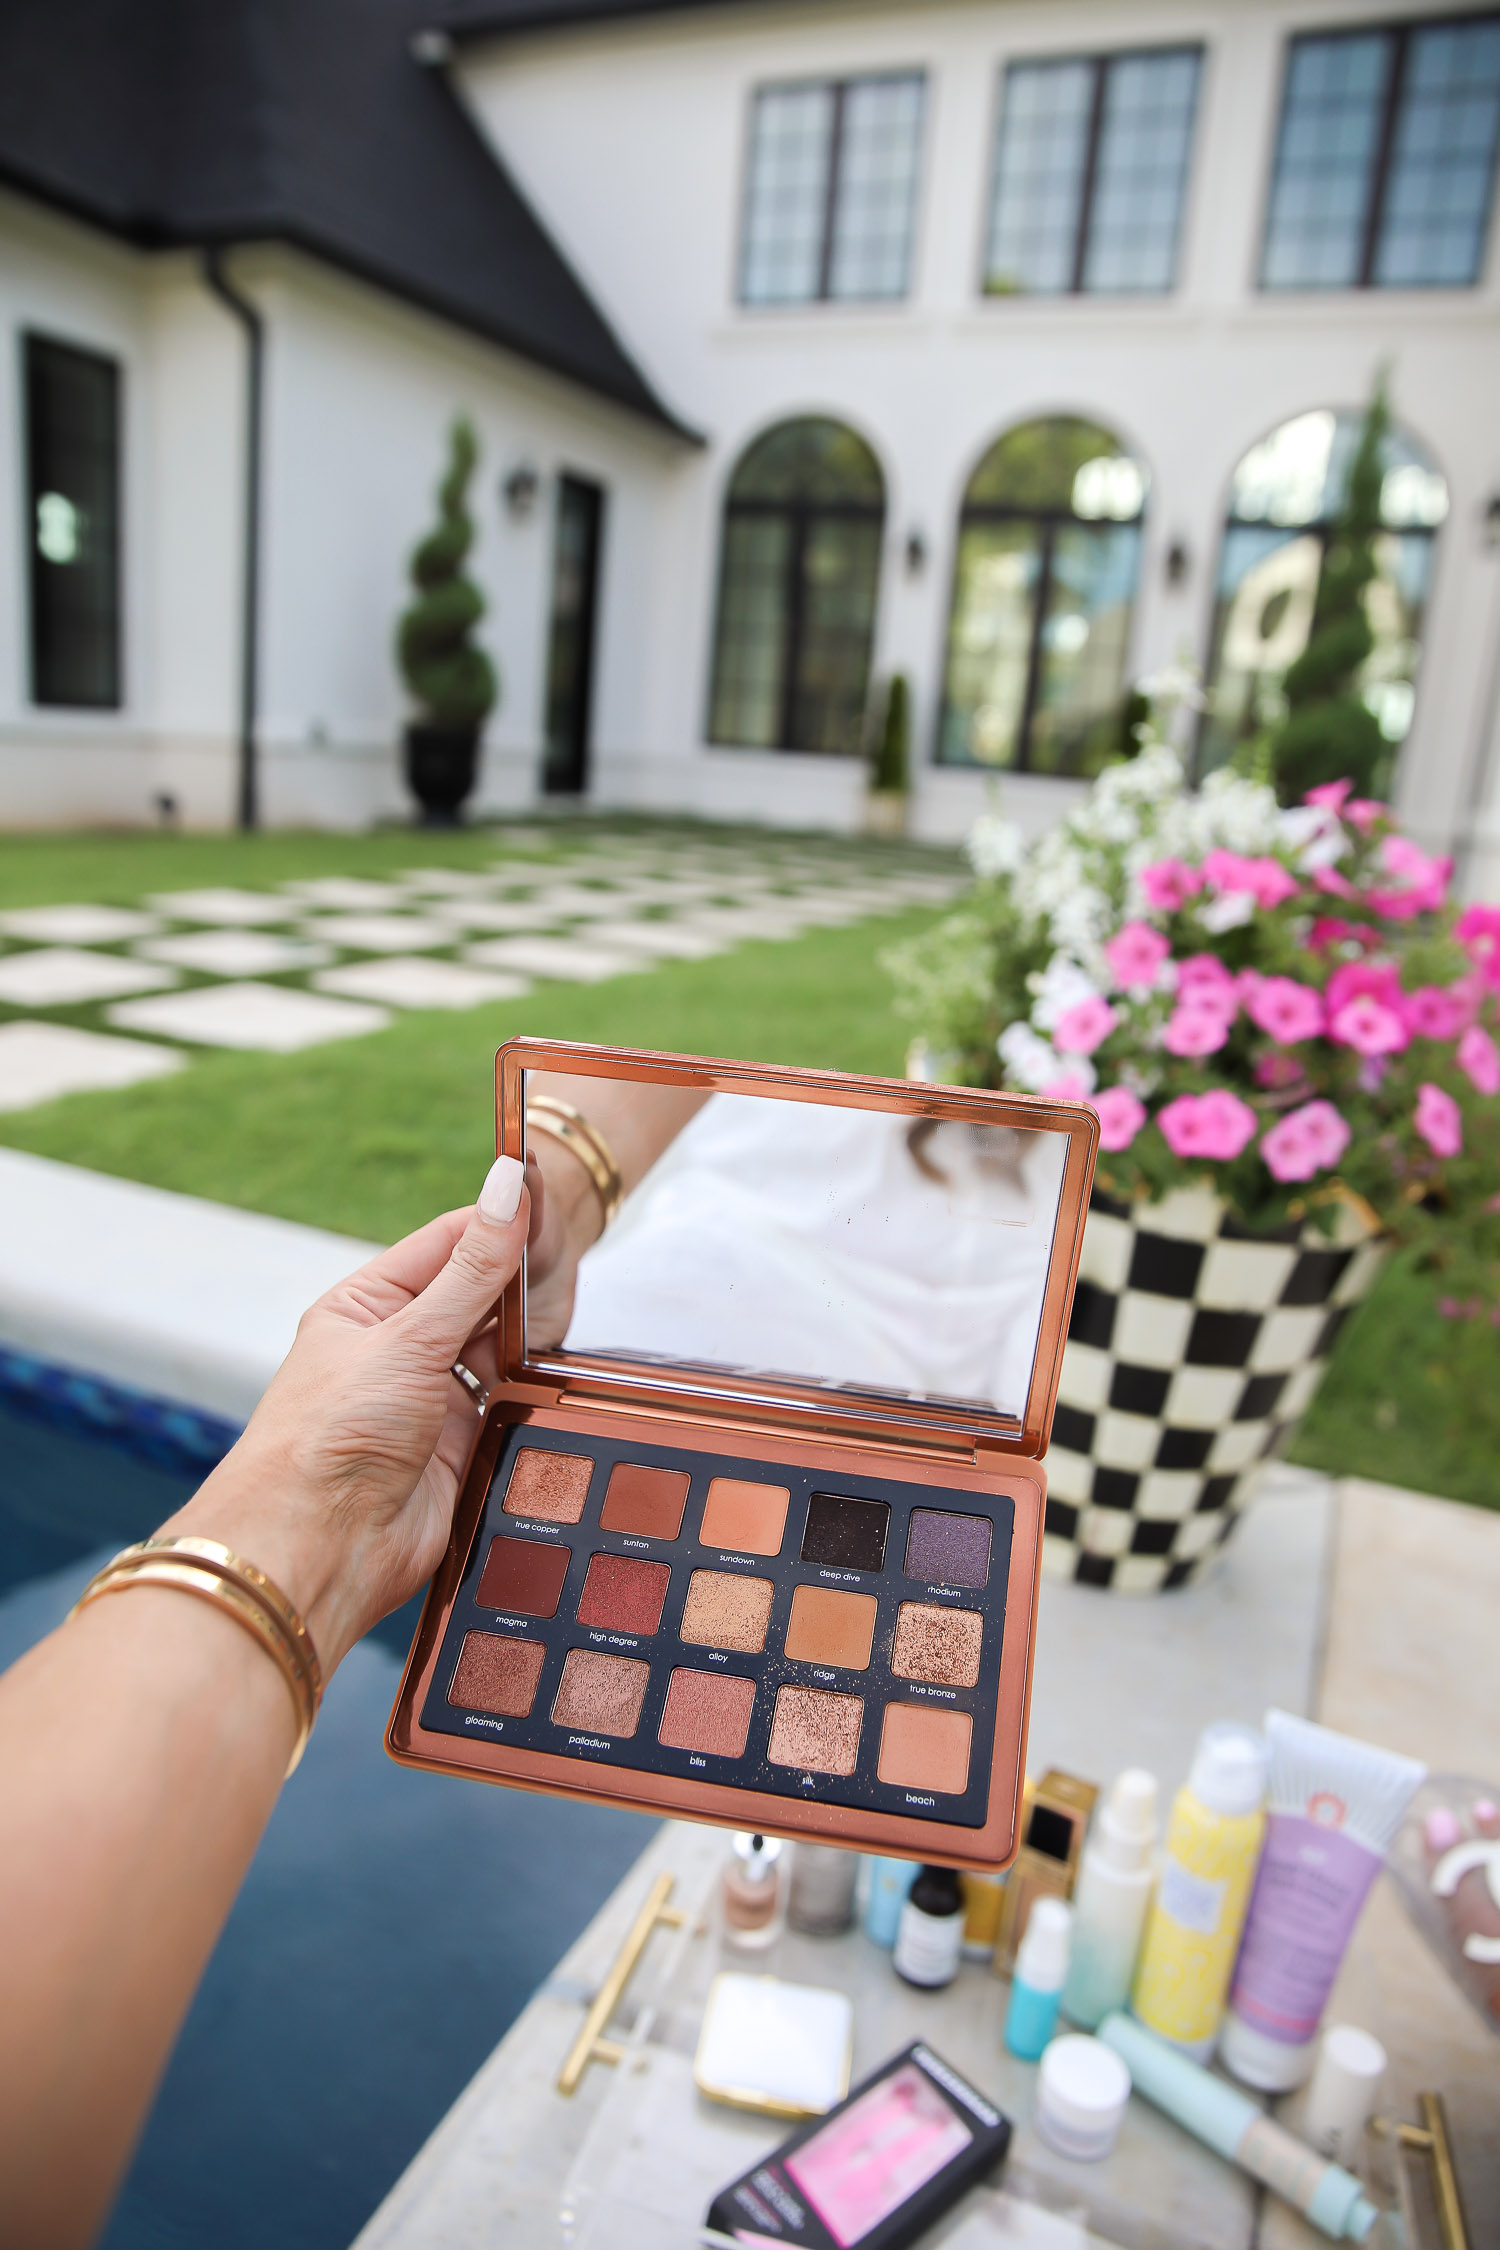 sephora haul beauty blogger july 2020, natasha denona bronze palette review, best dry shampoo at sephora, tarte SPF powder, emily gemma house | Sephora Favorites by popular US beauty blog, The Sweetest Thing: image of Emily Gemma holding a eyeshadow pallet.